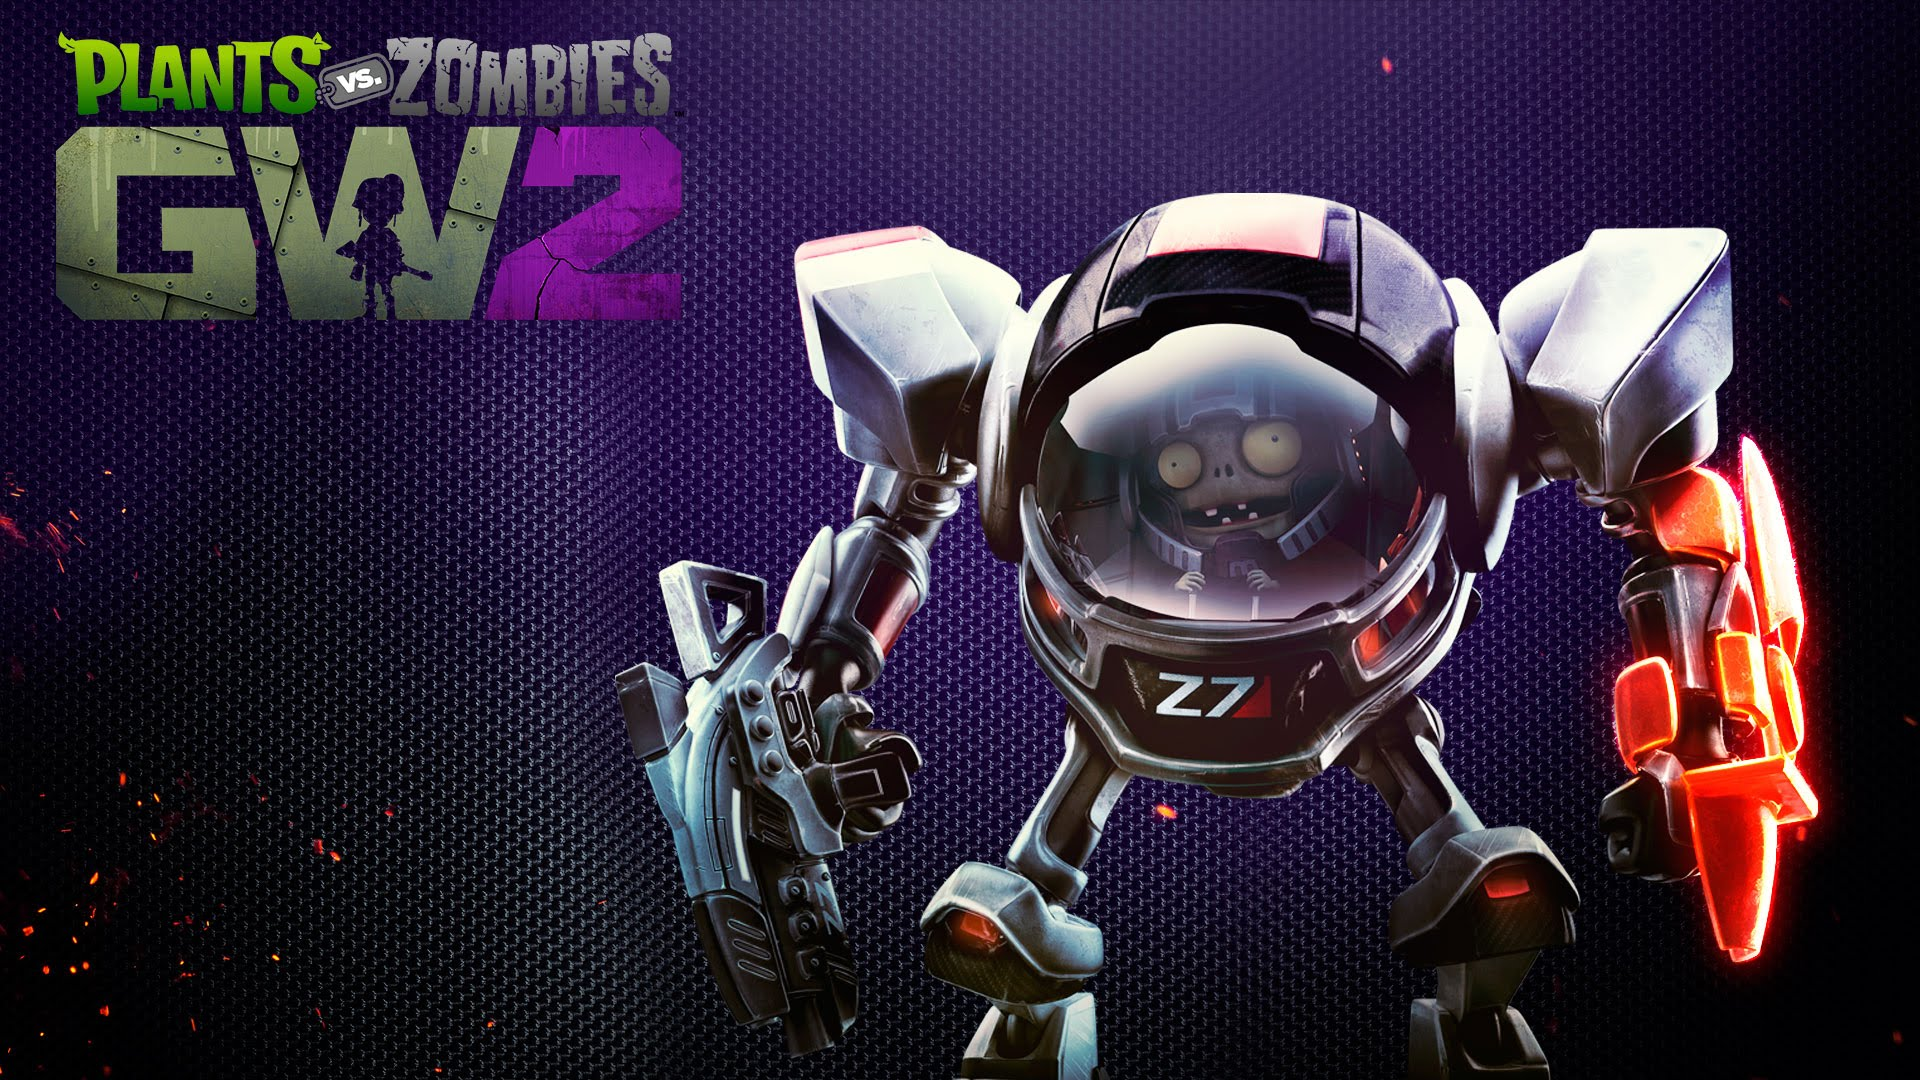 Plants vs zombies garden warfare 2 review gamerfuzion - Plants vs zombies garden warfare 2 review ...